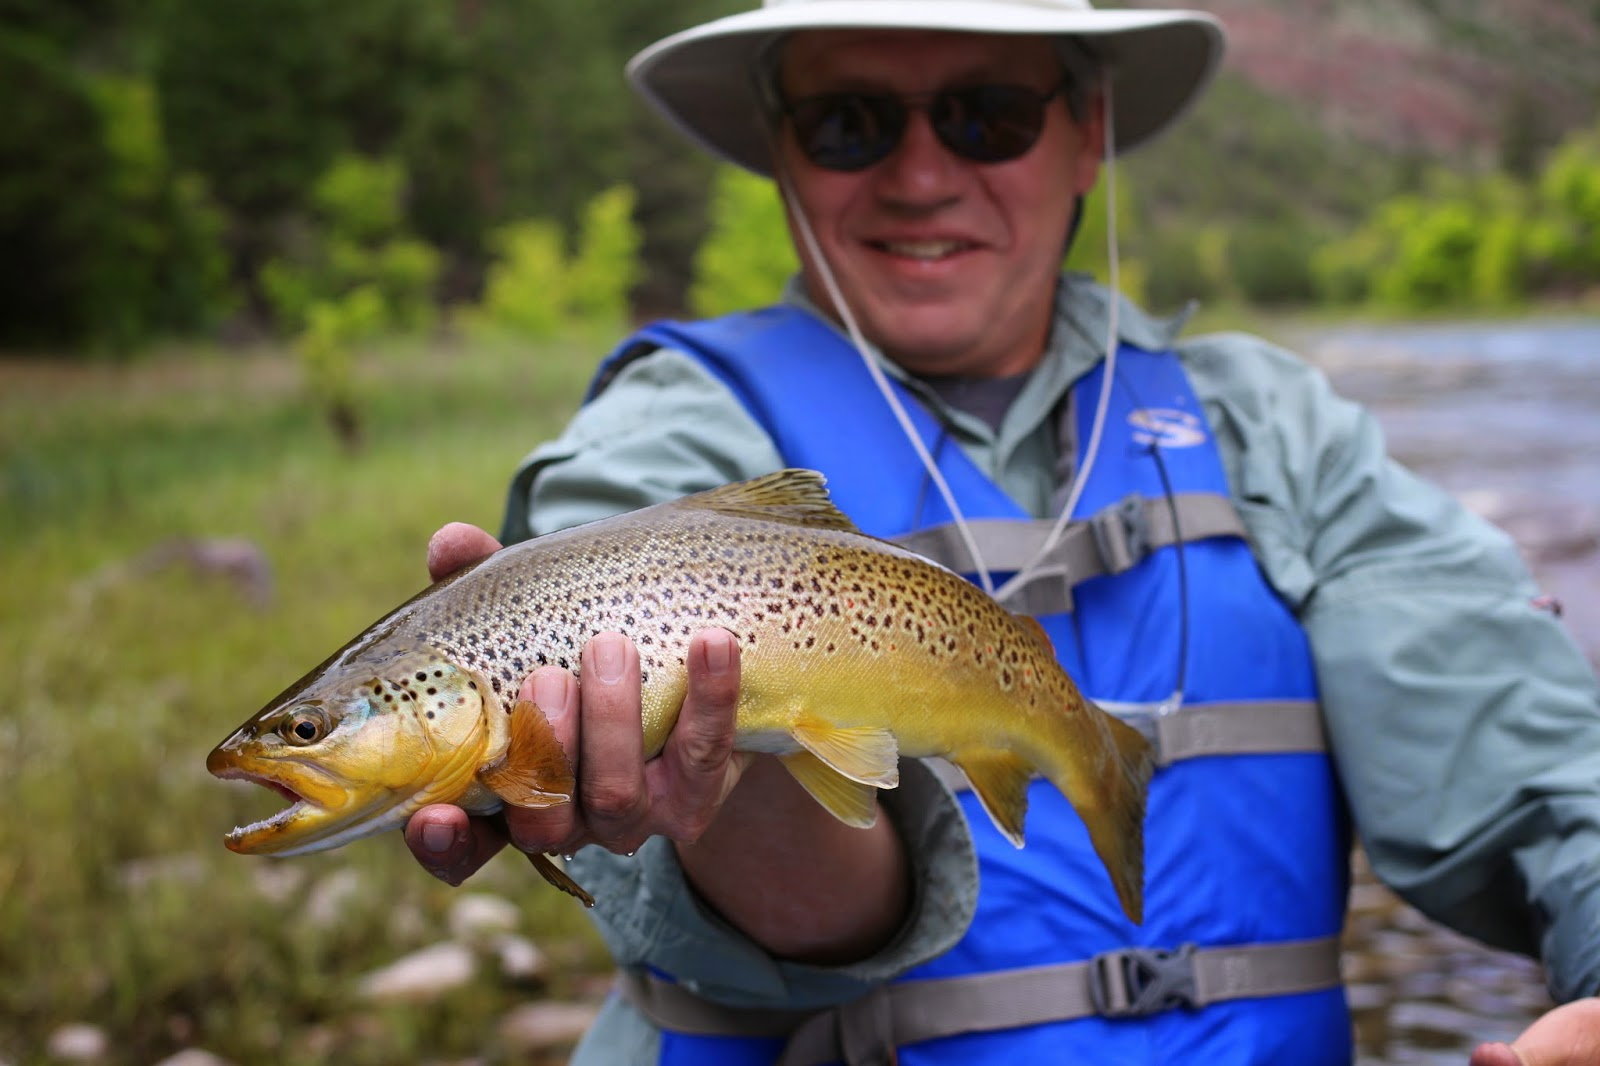 Fly+Fish+the+Green+River+A+section+with+Jay+Scott+Outdoors+during+the+Cicada+Hatch+June+2014+7.JPG